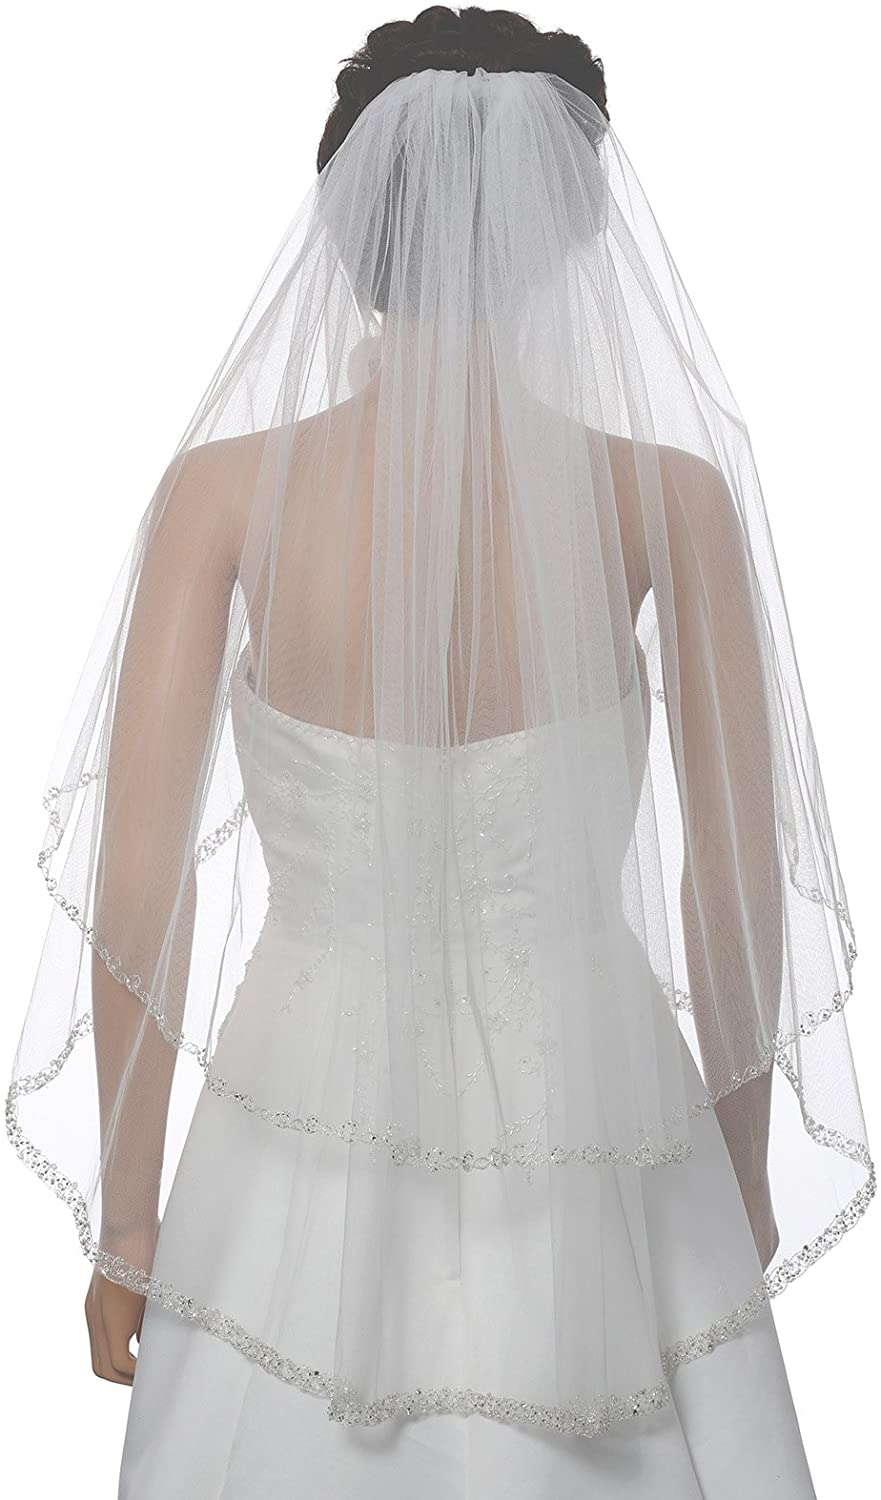 2T 2 Tier Dual Edge Embroided Pearl Crystal Beaded Veil Fingertip Length 36